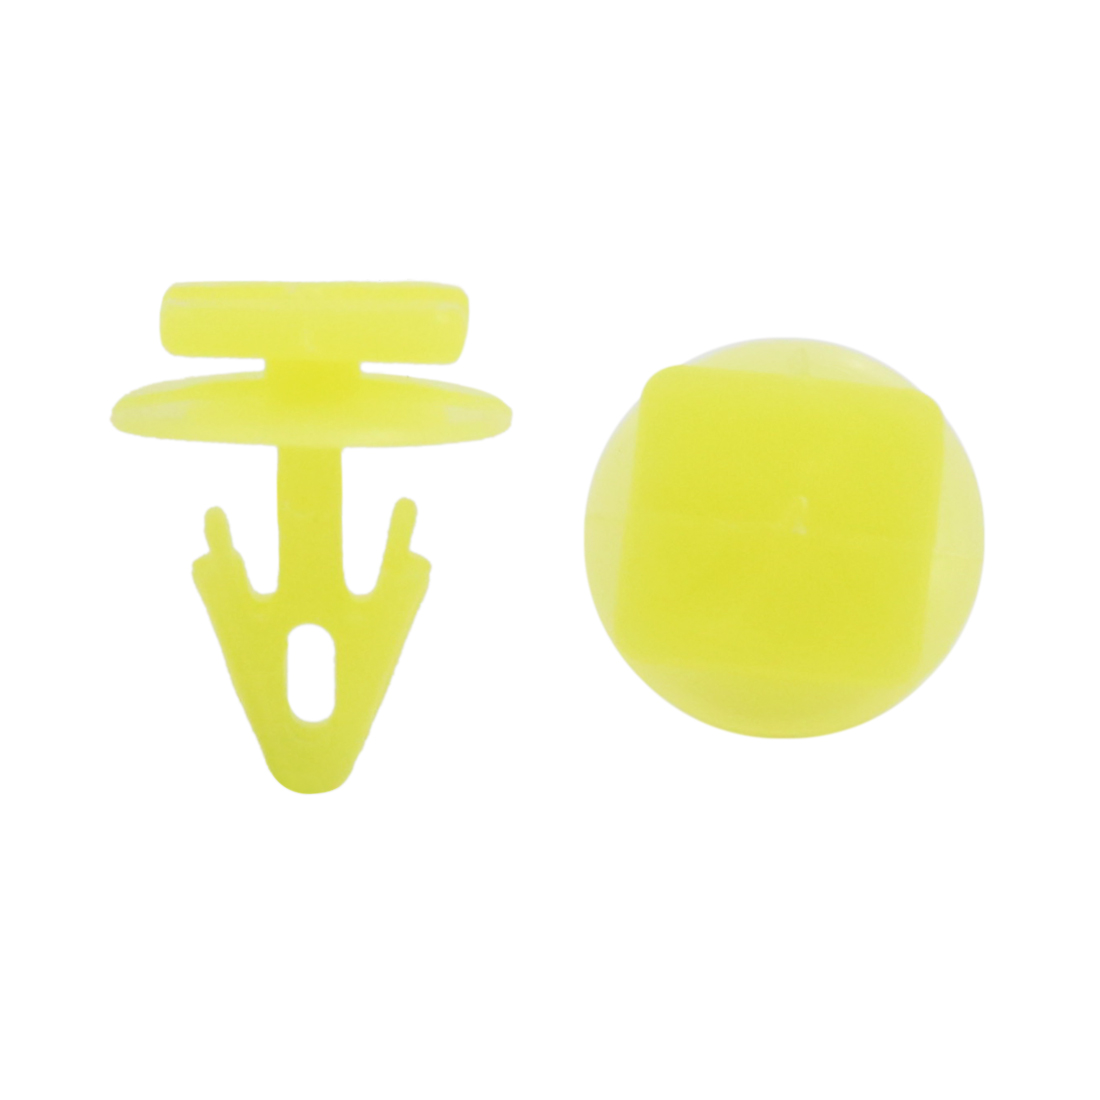 20pcs Yellow Plastic Rivets Interior Moulding Clips Fender Fastener 9mm for Car